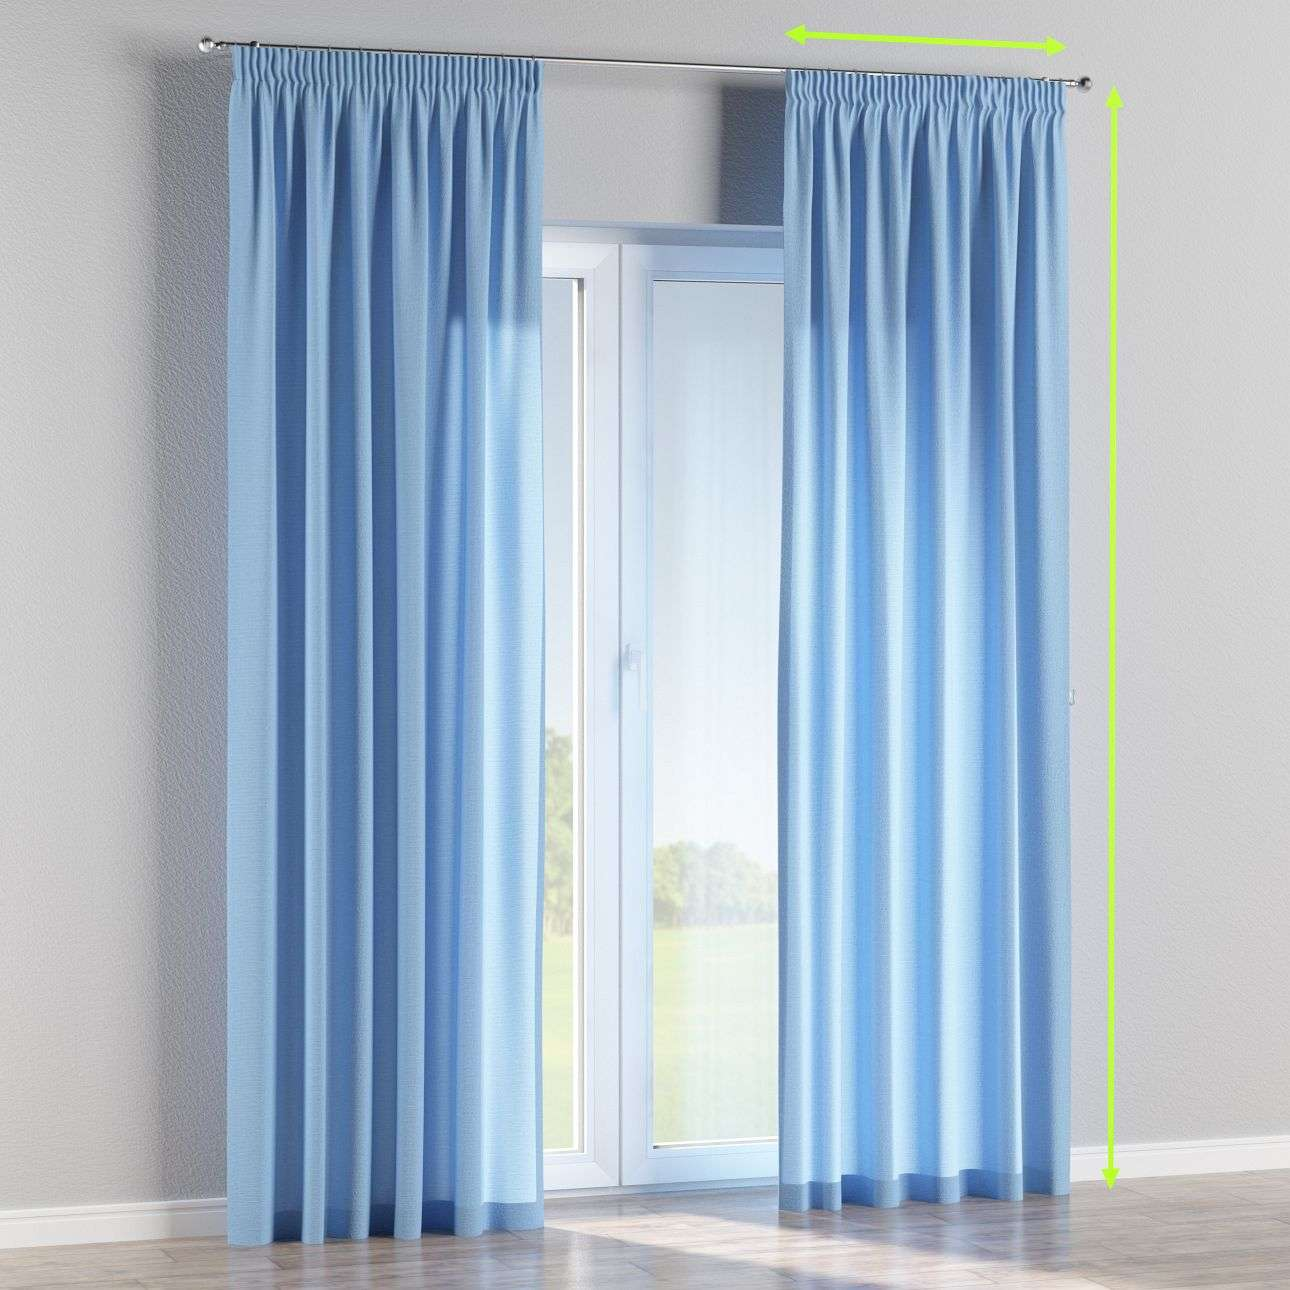 Pencil pleat lined curtains in collection Loneta , fabric: 133-21